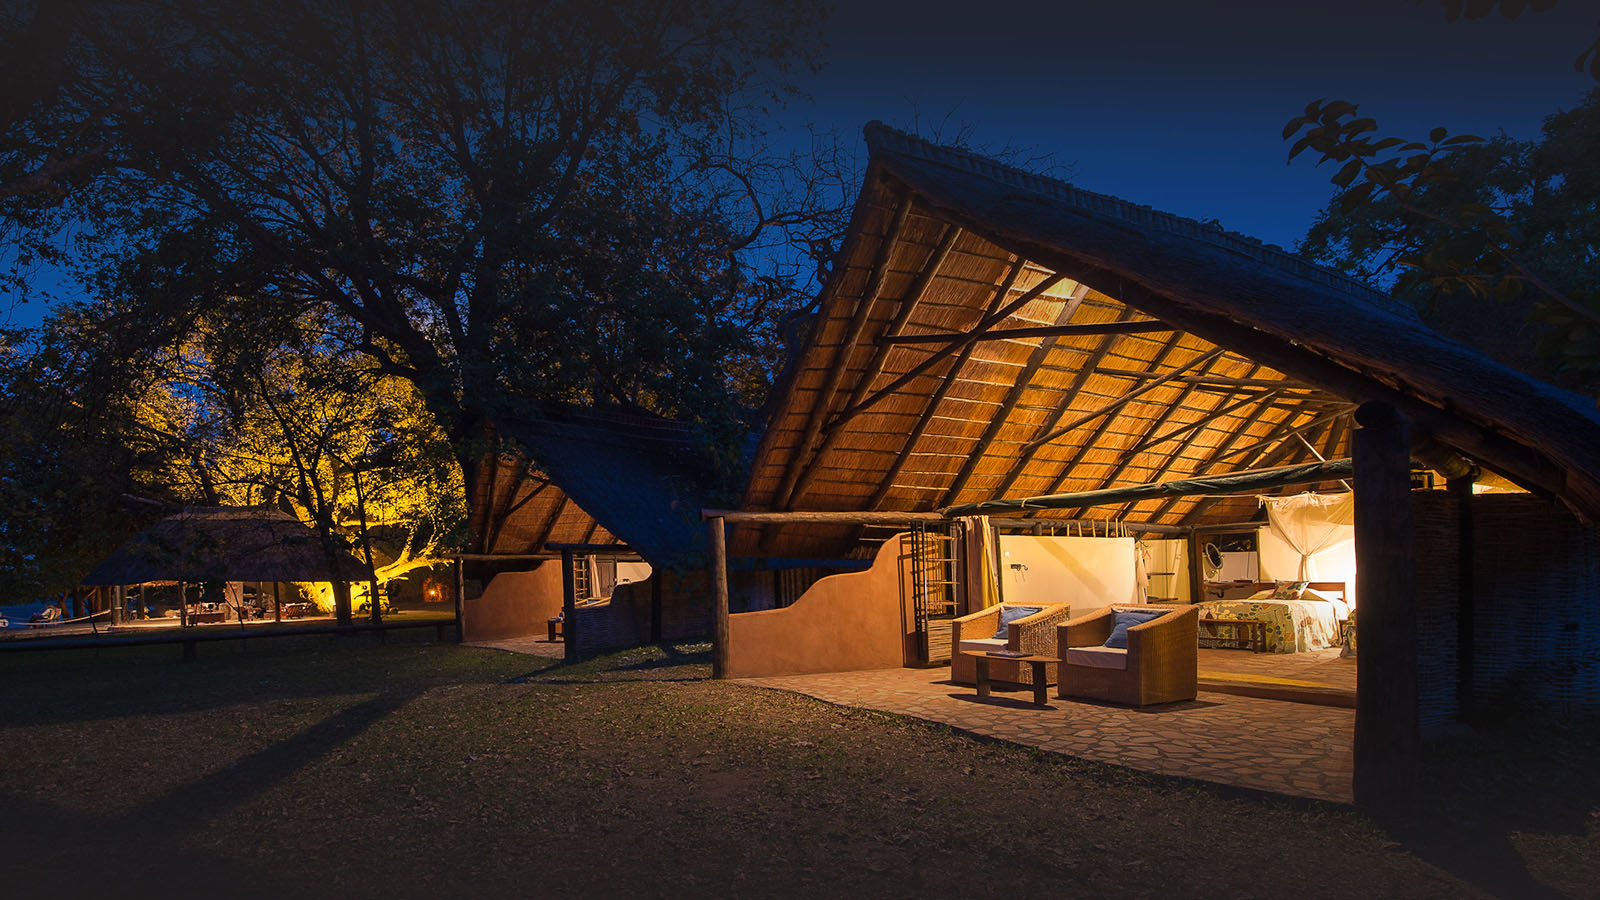 rps-green-season-walk-zambia-in-style-safari-packages-tours-lodge